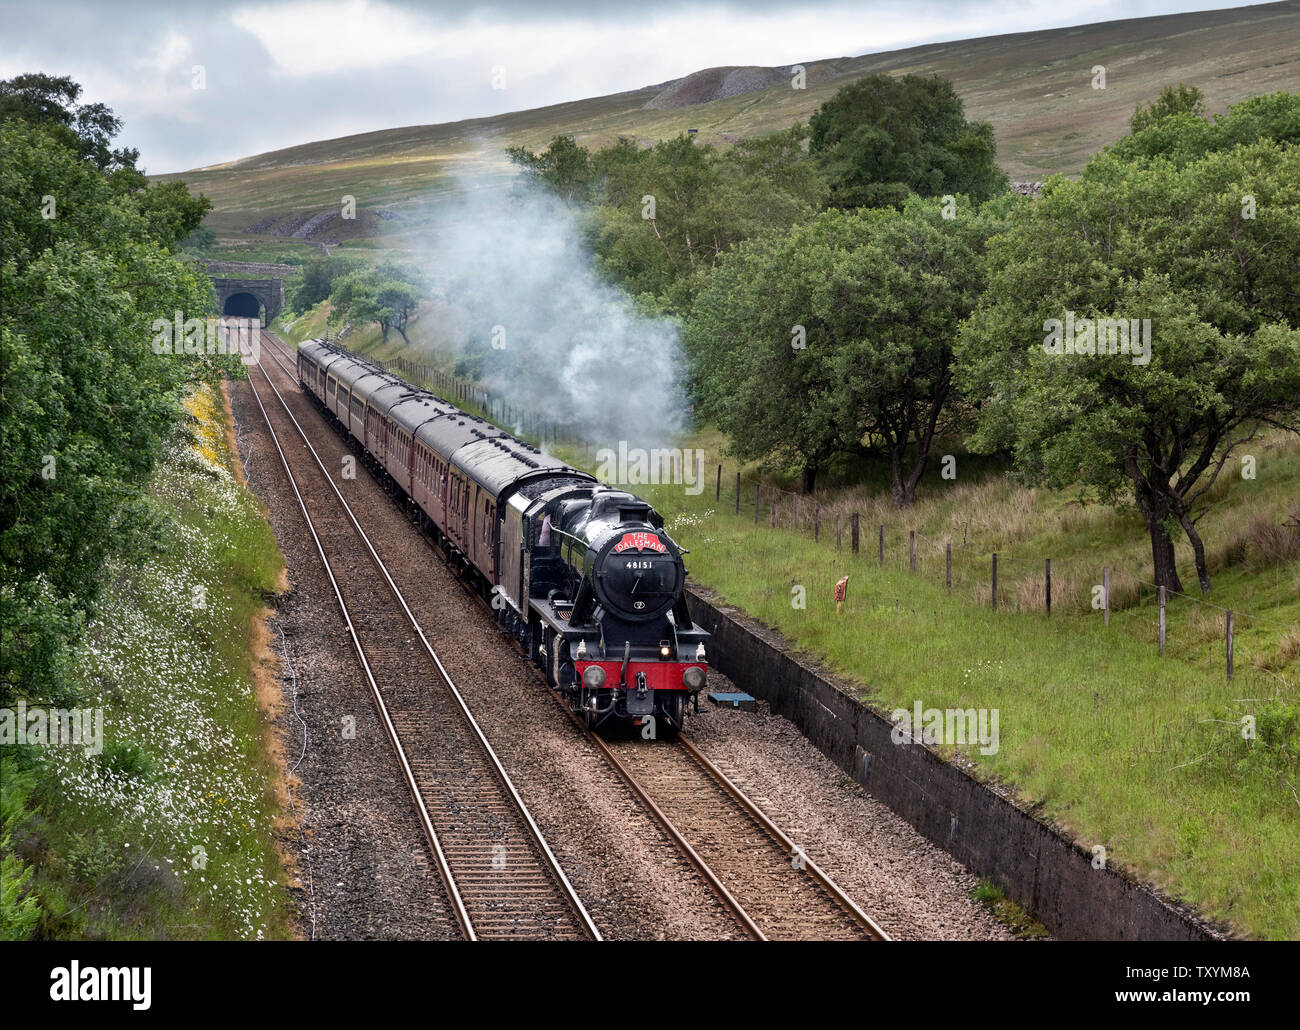 Ribblehead, North Yorkshire, UK. 25th June, 2019. 'The Dalesman' steam excursion from Chester to Carlisle and return. Seen here on the return journey from Carlisle, emerging from Blea Moor tunnel on the Settle-Carlisle railway line, Ribblehead, North Yorkshire. Spoil heaps and vents from Blea Moor tunnel can be seen above the tunnel entrance and also further up on the hillside. The train is hauled by a 1940s Stanier Class 8F locomotive. Credit: John Bentley/Alamy Live News - Stock Image